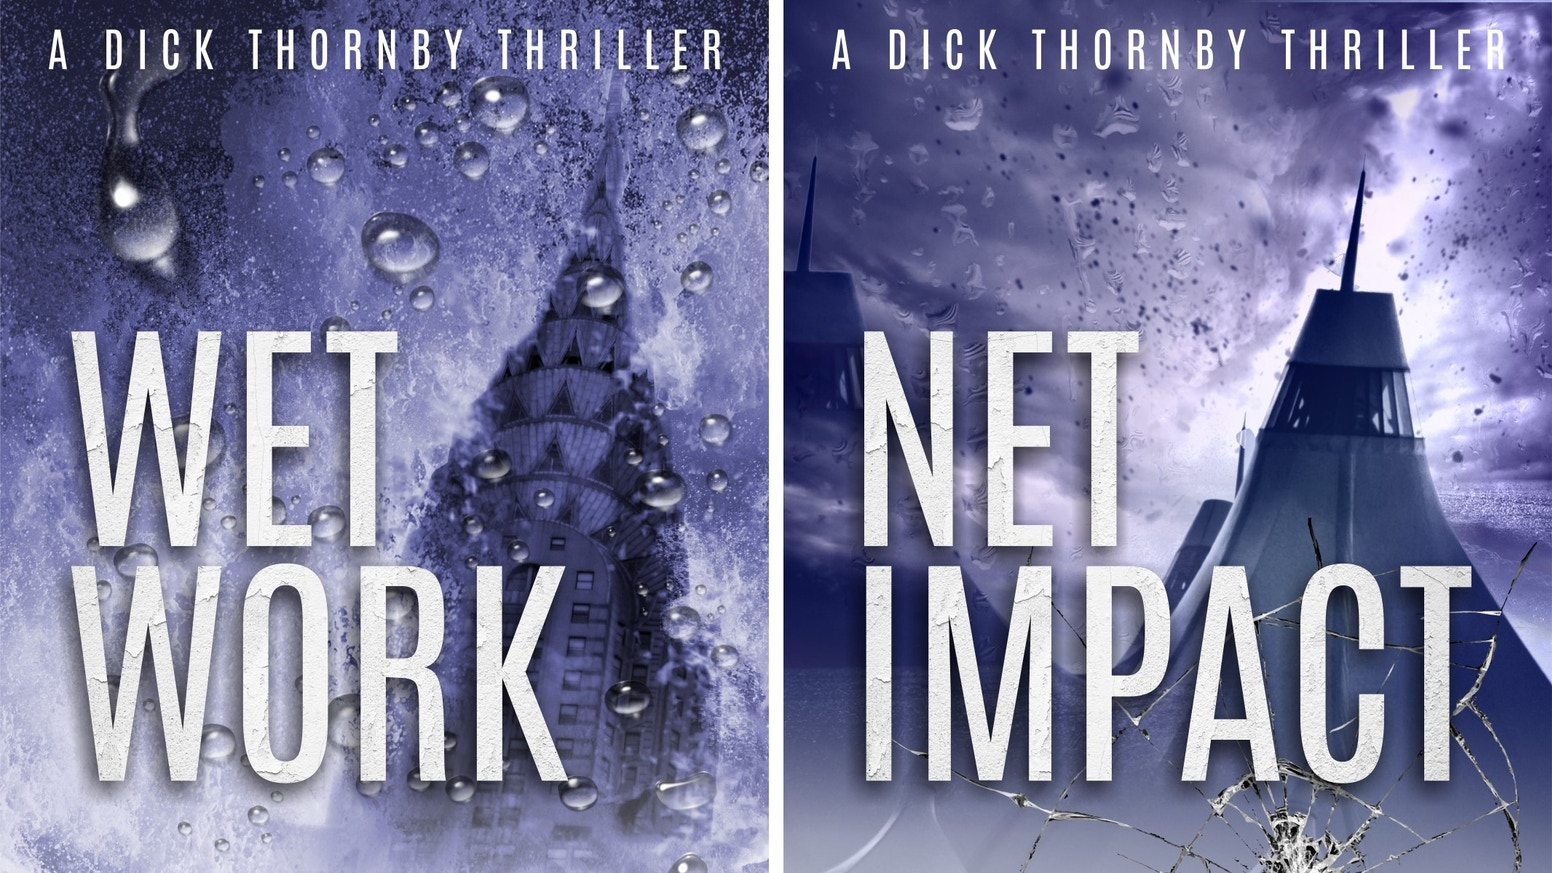 Dick Thornby is a new kind of spy for a new kind of world. Two novels; two conspiracies based on real world events. Lots of action.